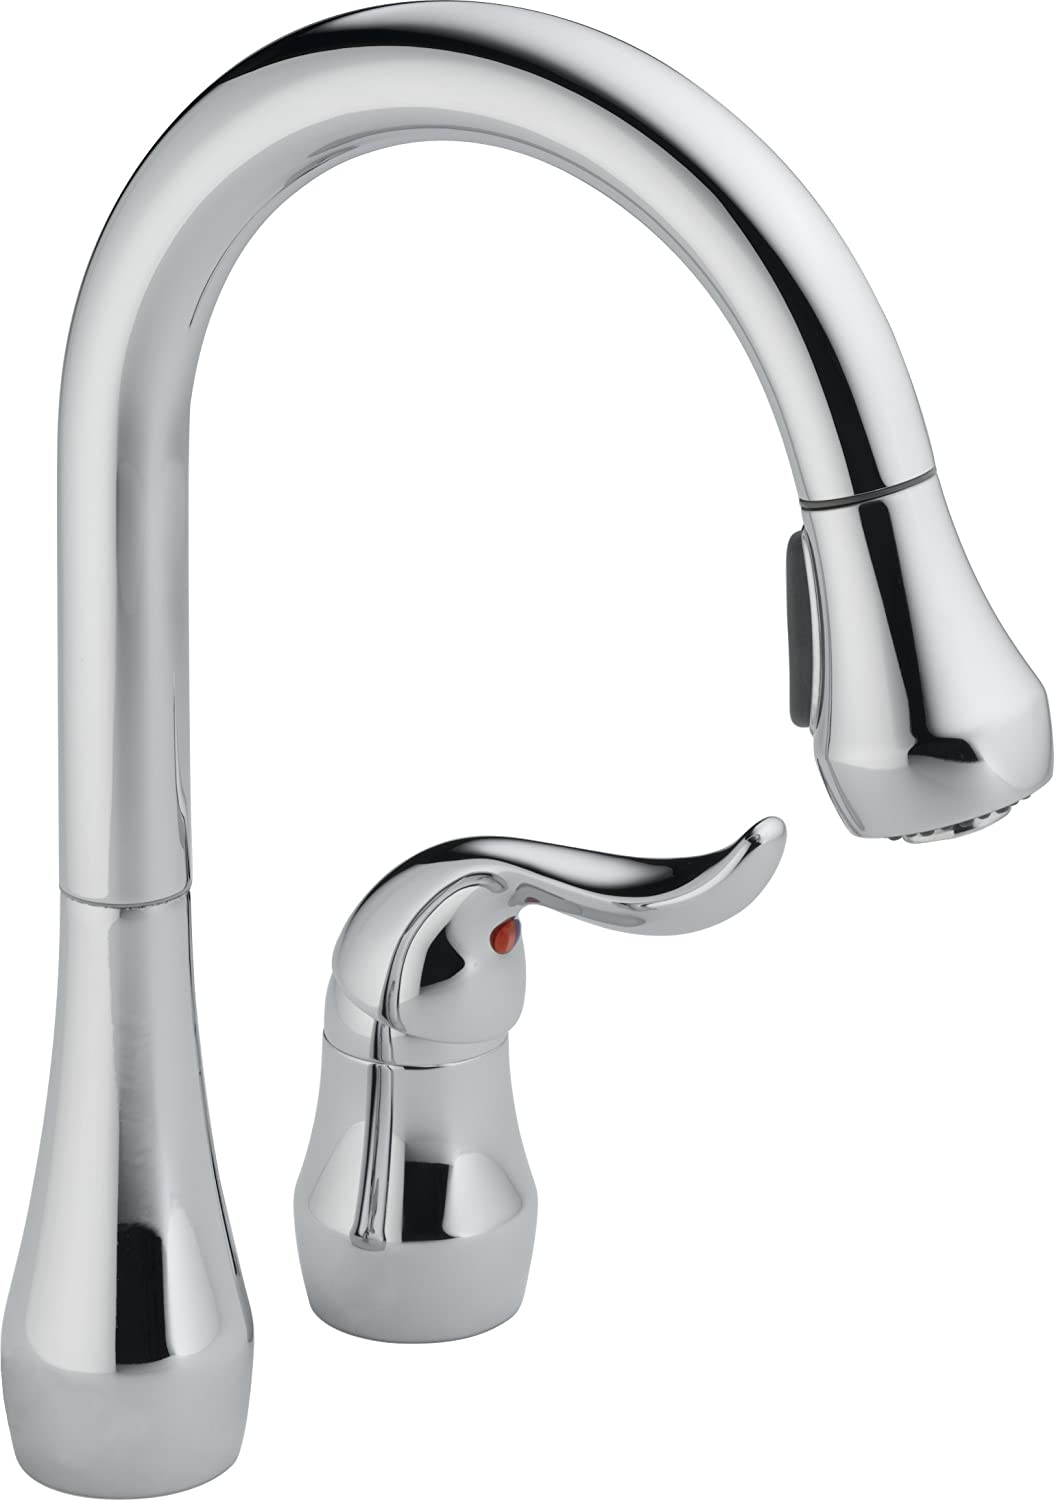 Peerless P188102LF Apex Kitchen Widespread Pull Down Kitchen Faucet, Chrome